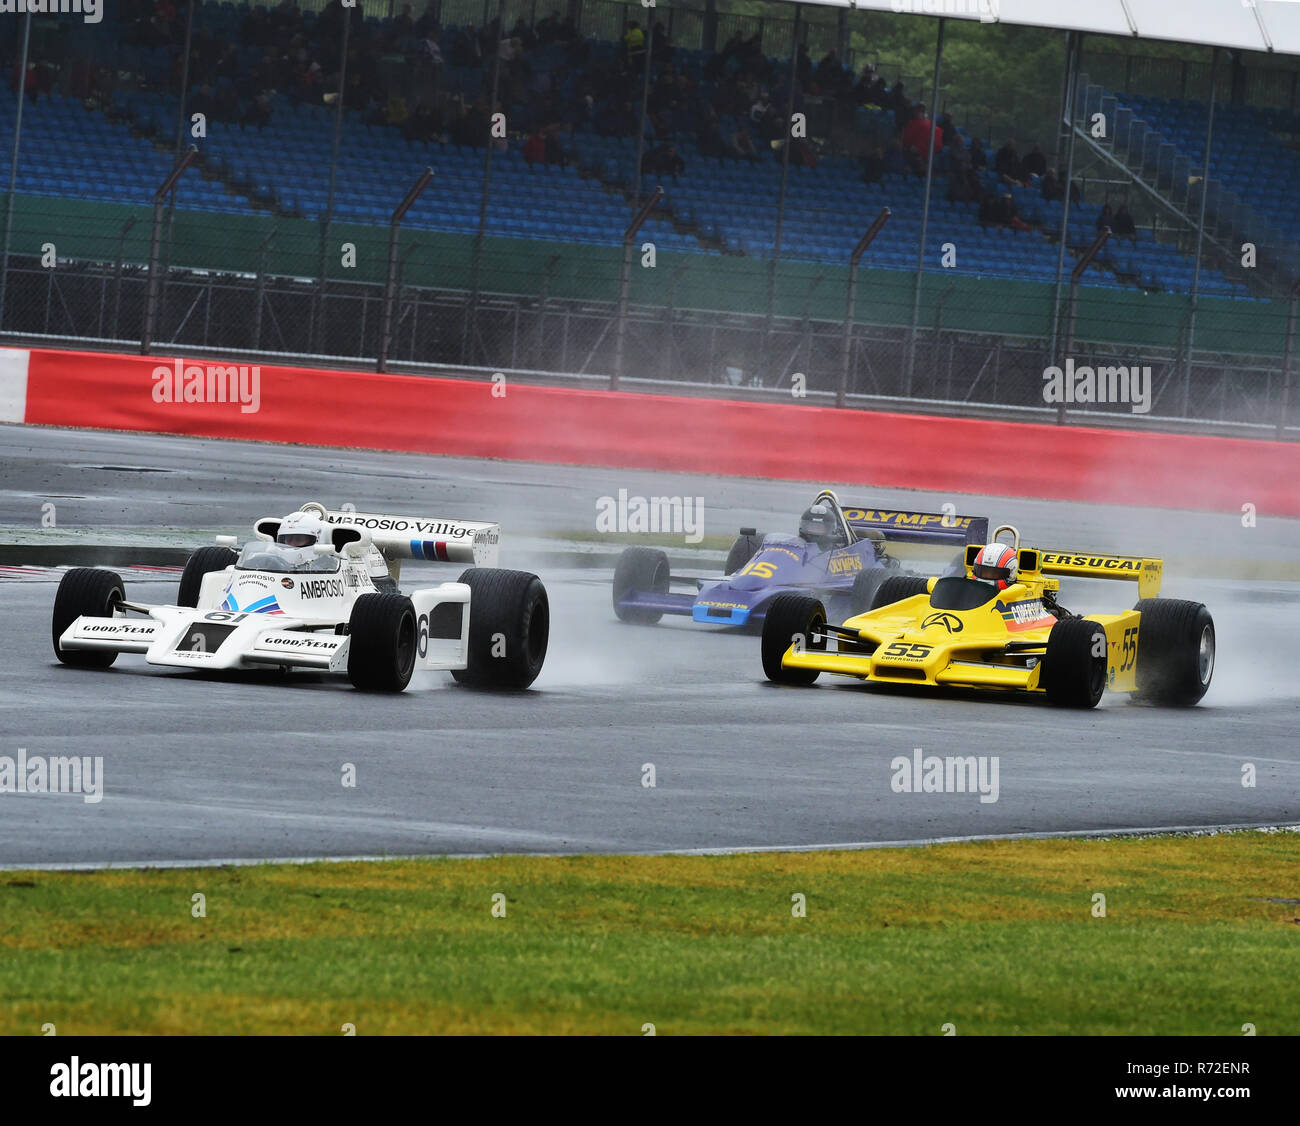 Jason Wright, Shadow DN8, Sam Hancock, Fittipaldi F5A, Michel Baudoin, Hesketh 308E, FIA Masters, Historic Formula One, Silverstone Classic 2015, Chri - Stock Image